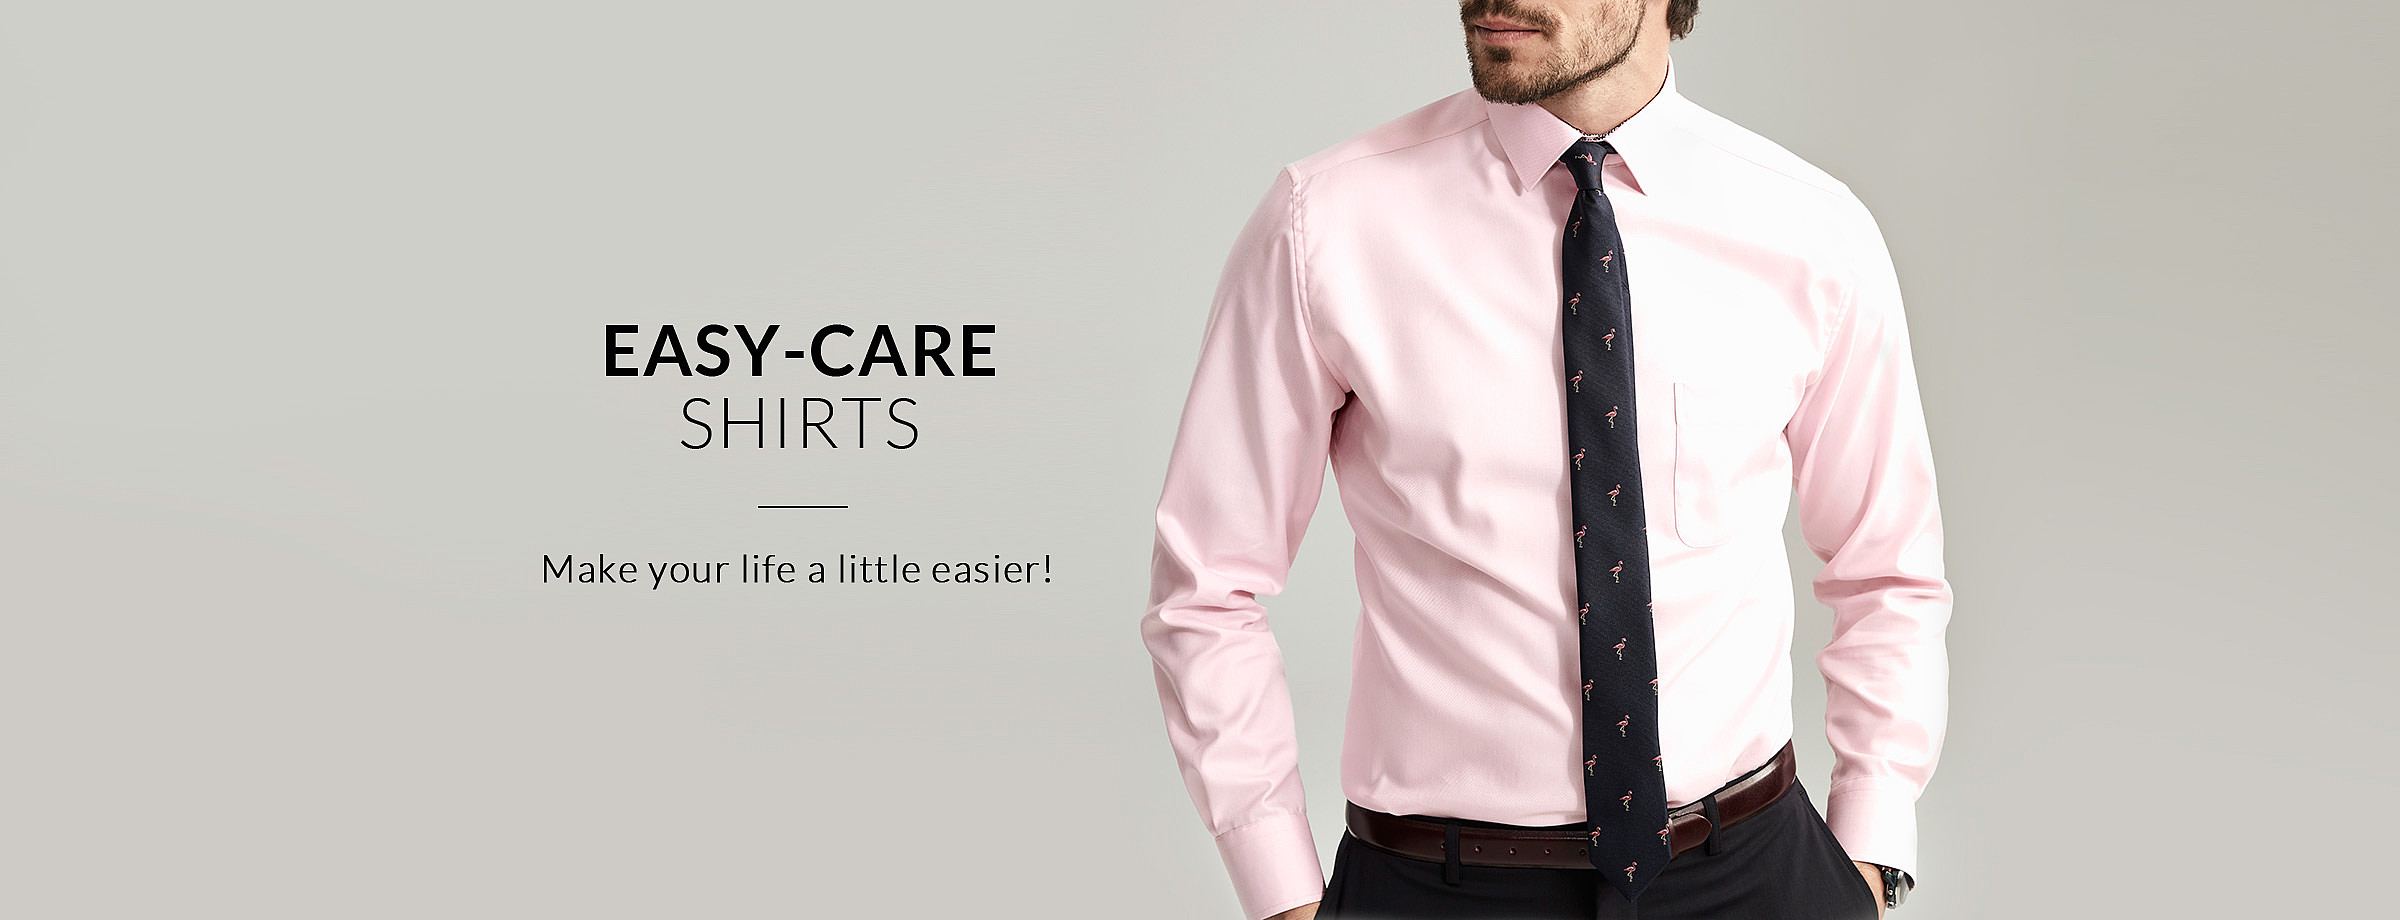 Easy-care shirts